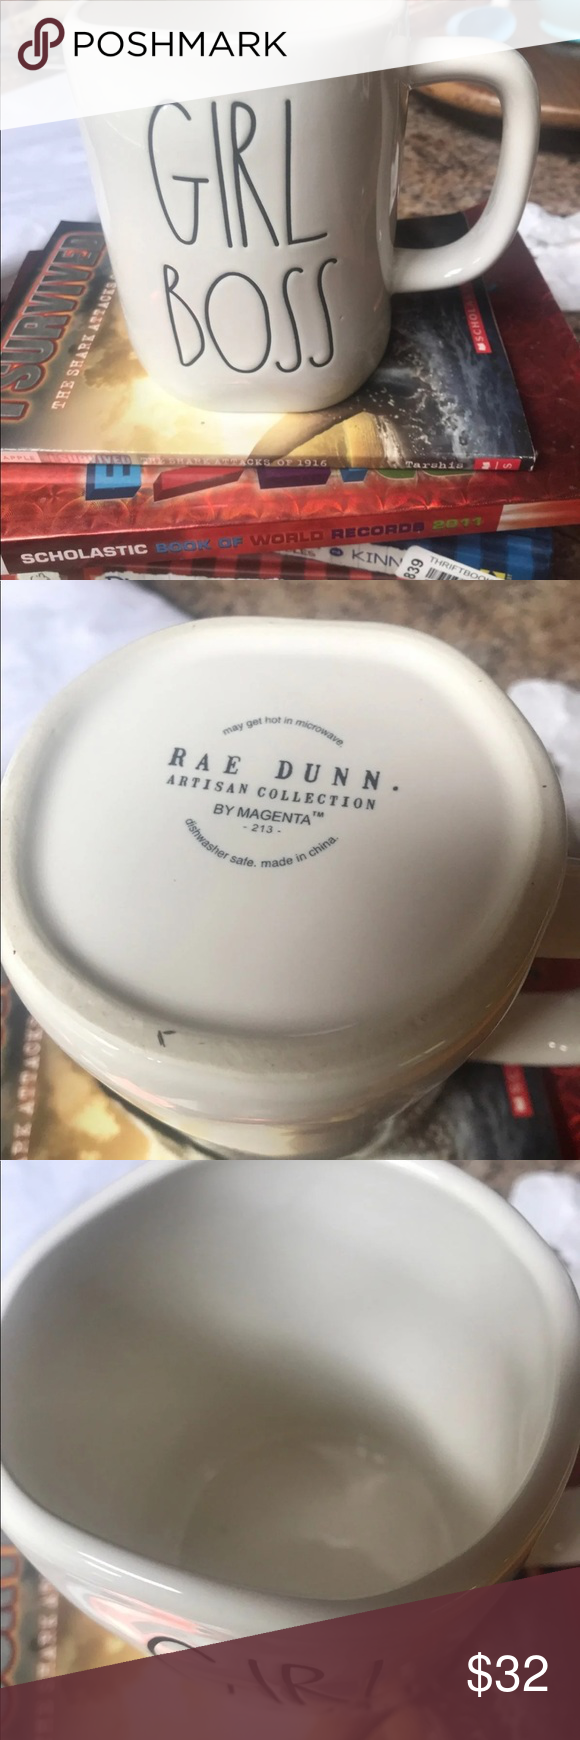 Rae Dunn Coffee ☕️ mug Girl Boss coffee mug by Rae Dunn  Like new. Rae Dunn Kitchen Coffee & Tea Accessories #bosscoffee Rae Dunn Coffee ☕️ mug Girl Boss coffee mug by Rae Dunn  Like new. Rae Dunn Kitchen Coffee & Tea Accessories #bosscoffee